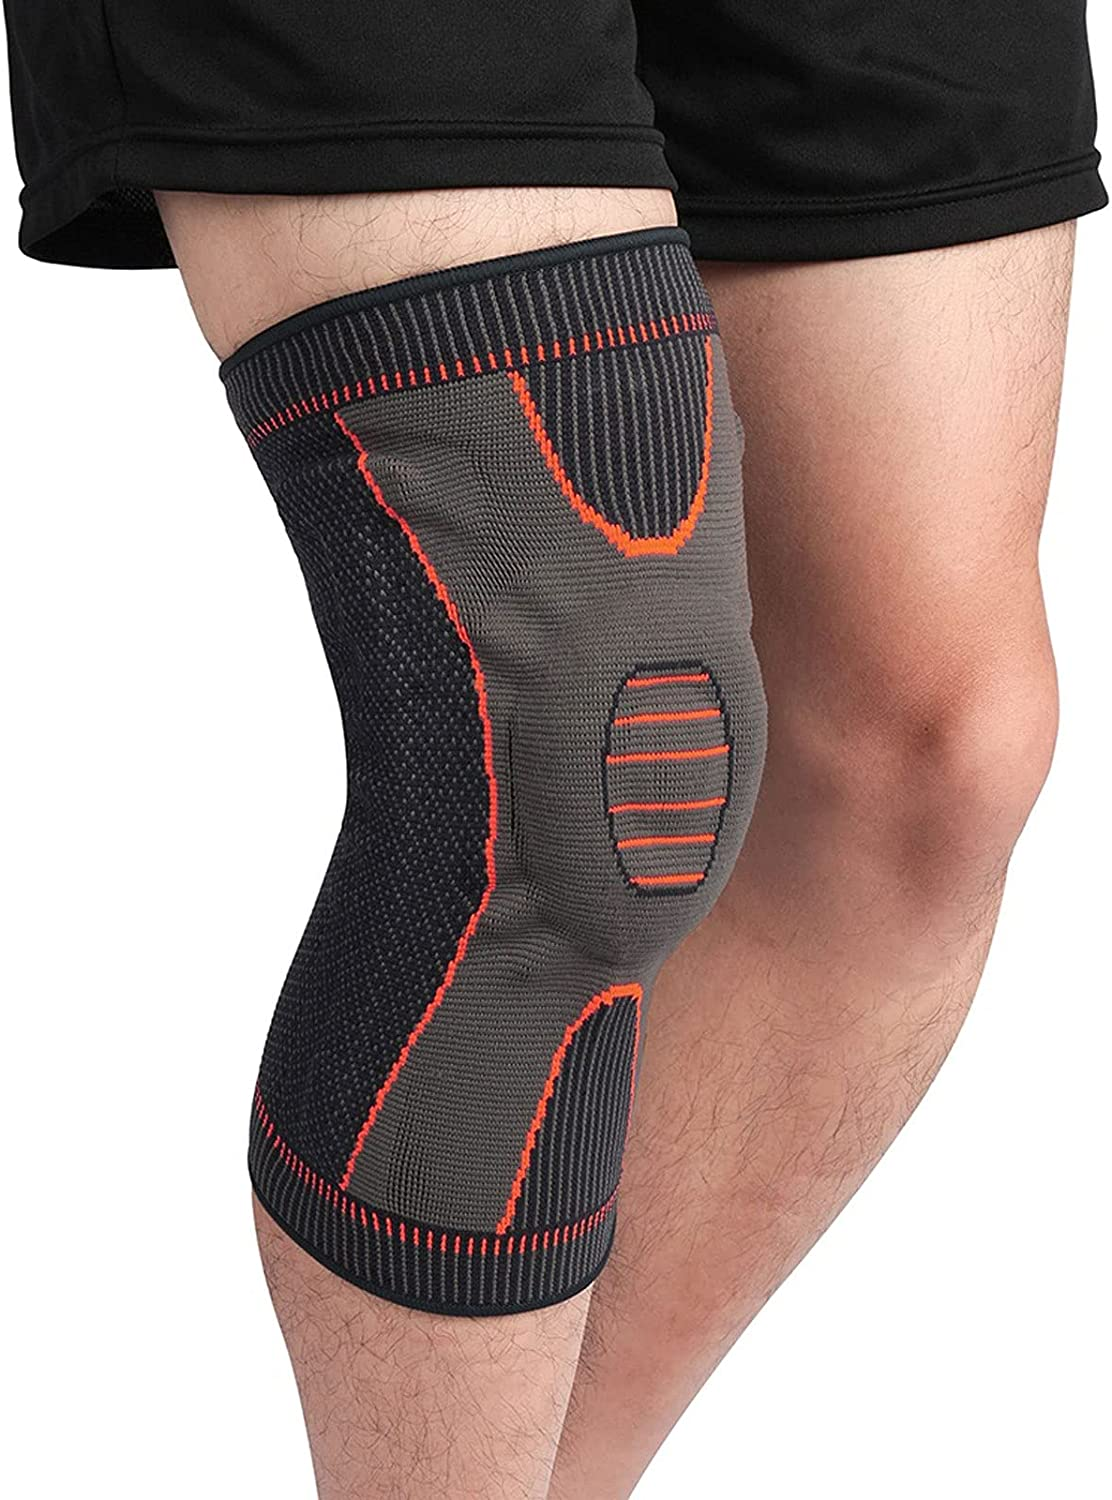 Nicwagrl Knee Brace Fees free Pads Fitness Sleeves Sports Suppo price